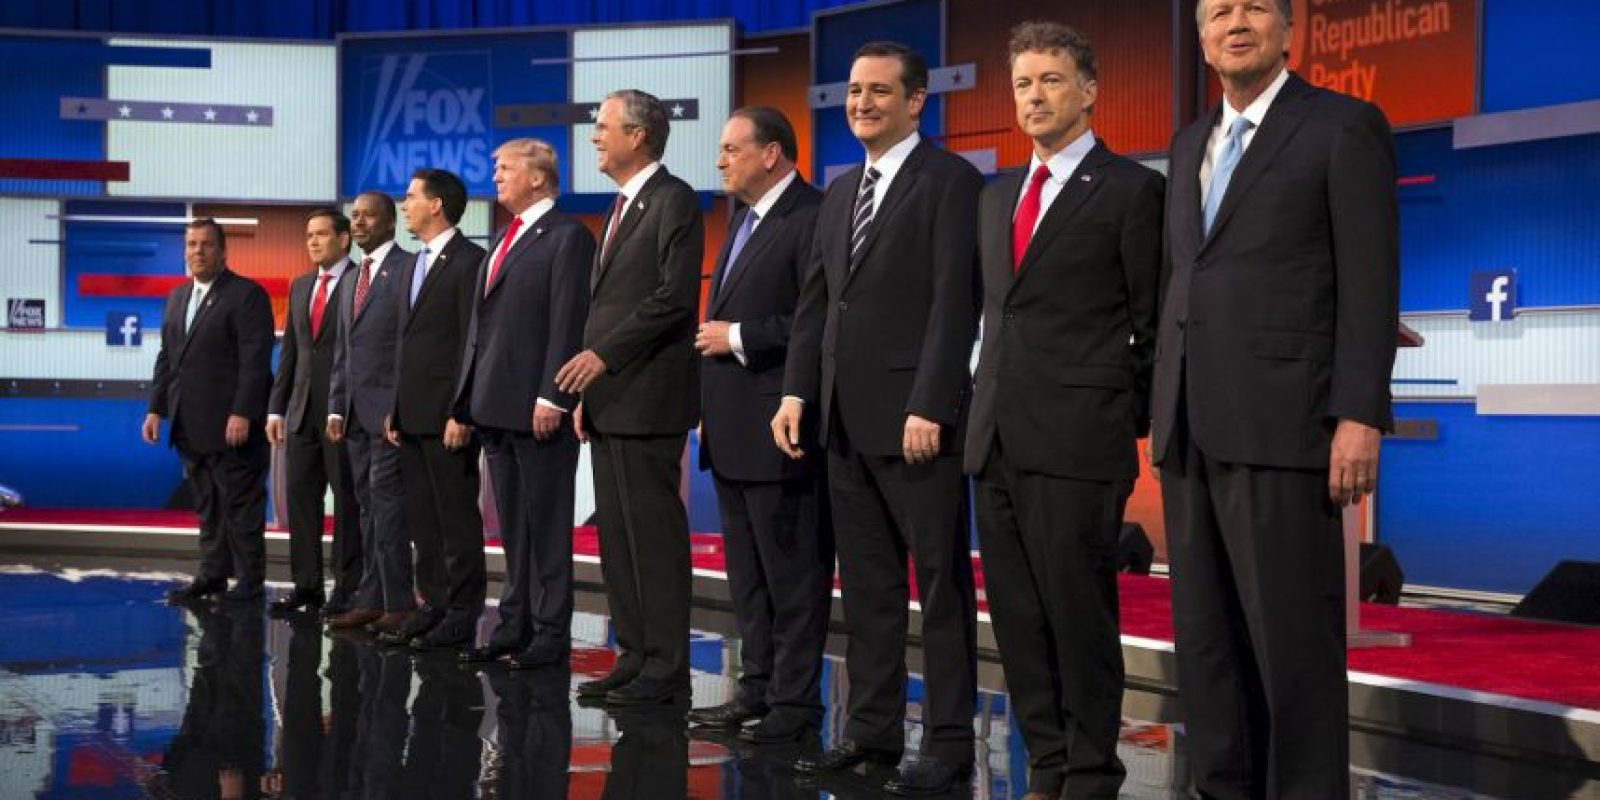 En este debate participaron: Donald Trump, Jeb Bush, Scott Walker, Mike Huckabee, Ben Carson, Ted Cruz, Marco Rubio, Rand Paul, Chris Christie y John Kasich. Foto: Getty Images